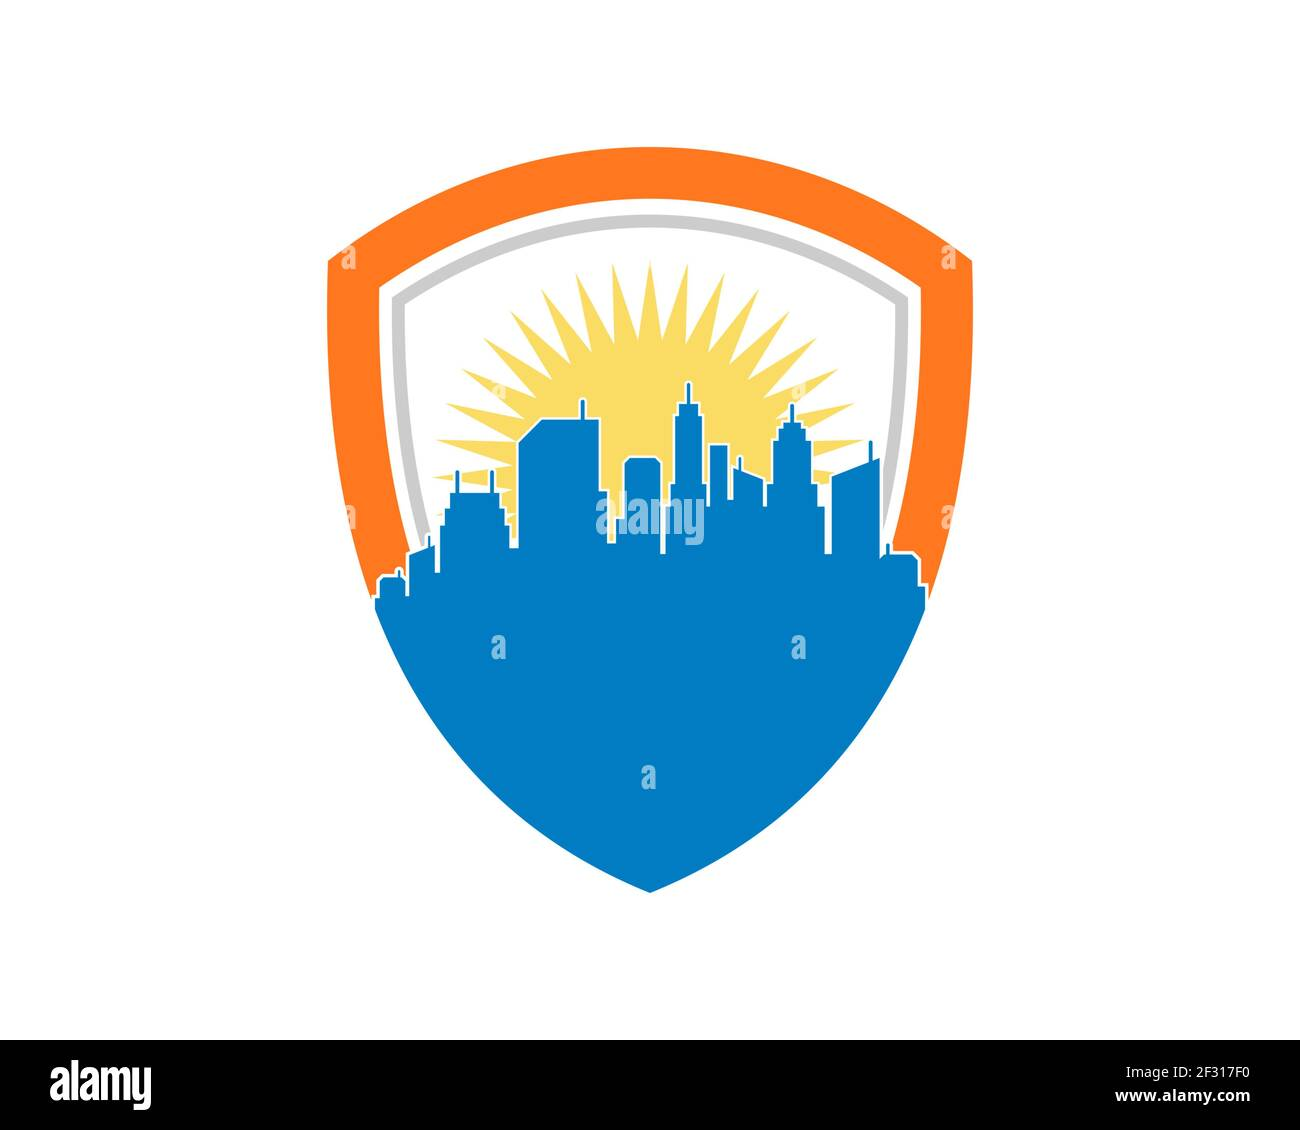 City building with shield protection shape Stock Photo